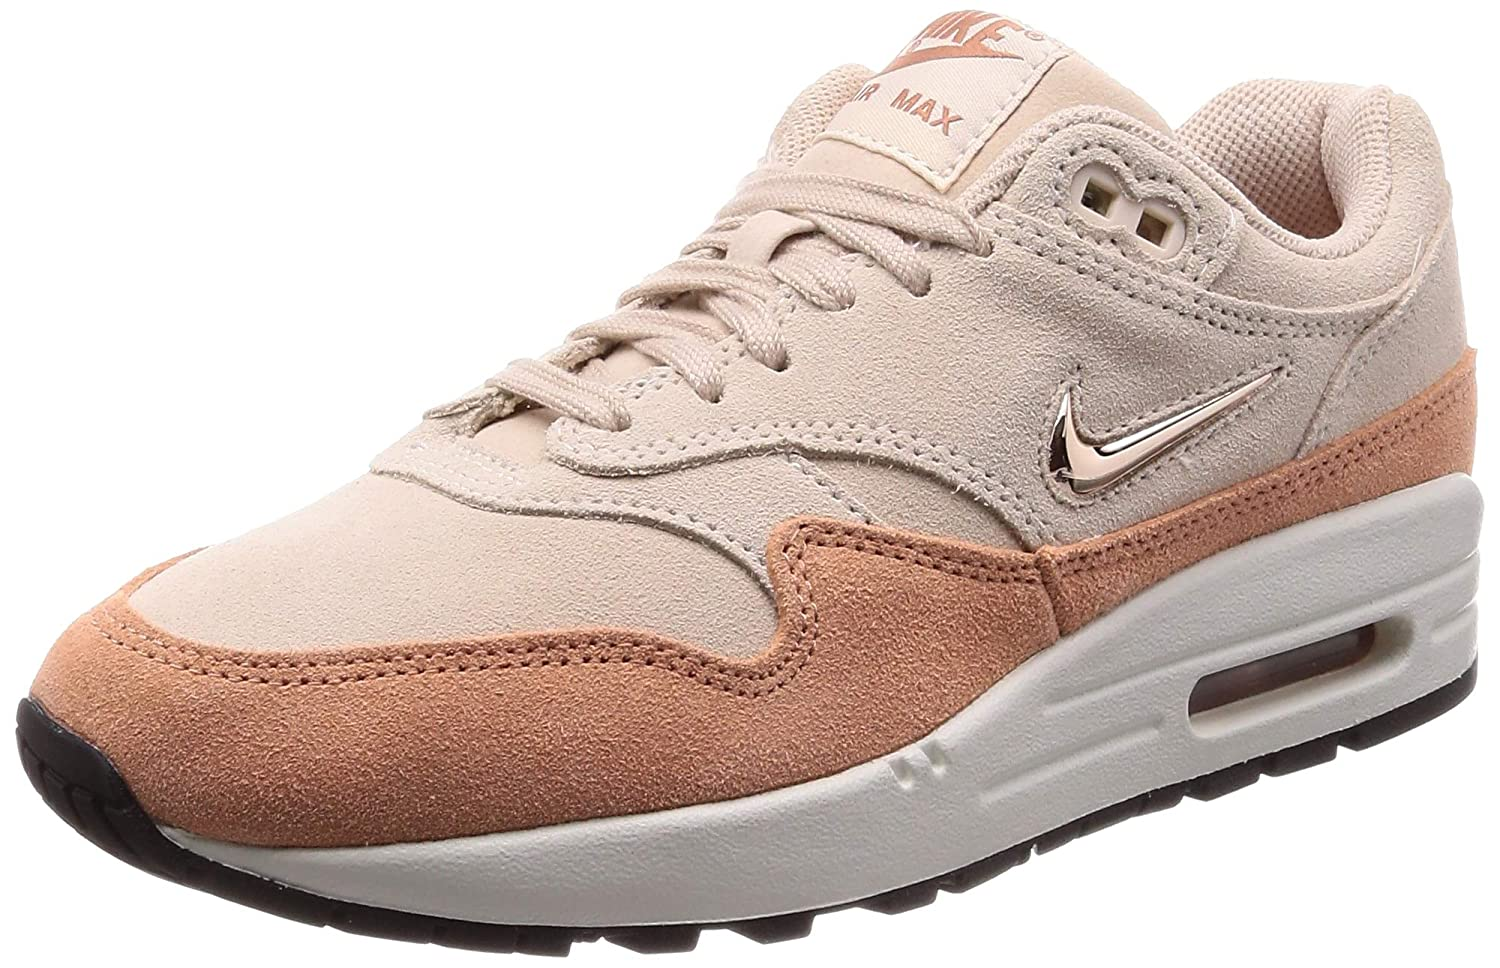 Nike W Air Max 1 Premium Sc, Women's Competition Running